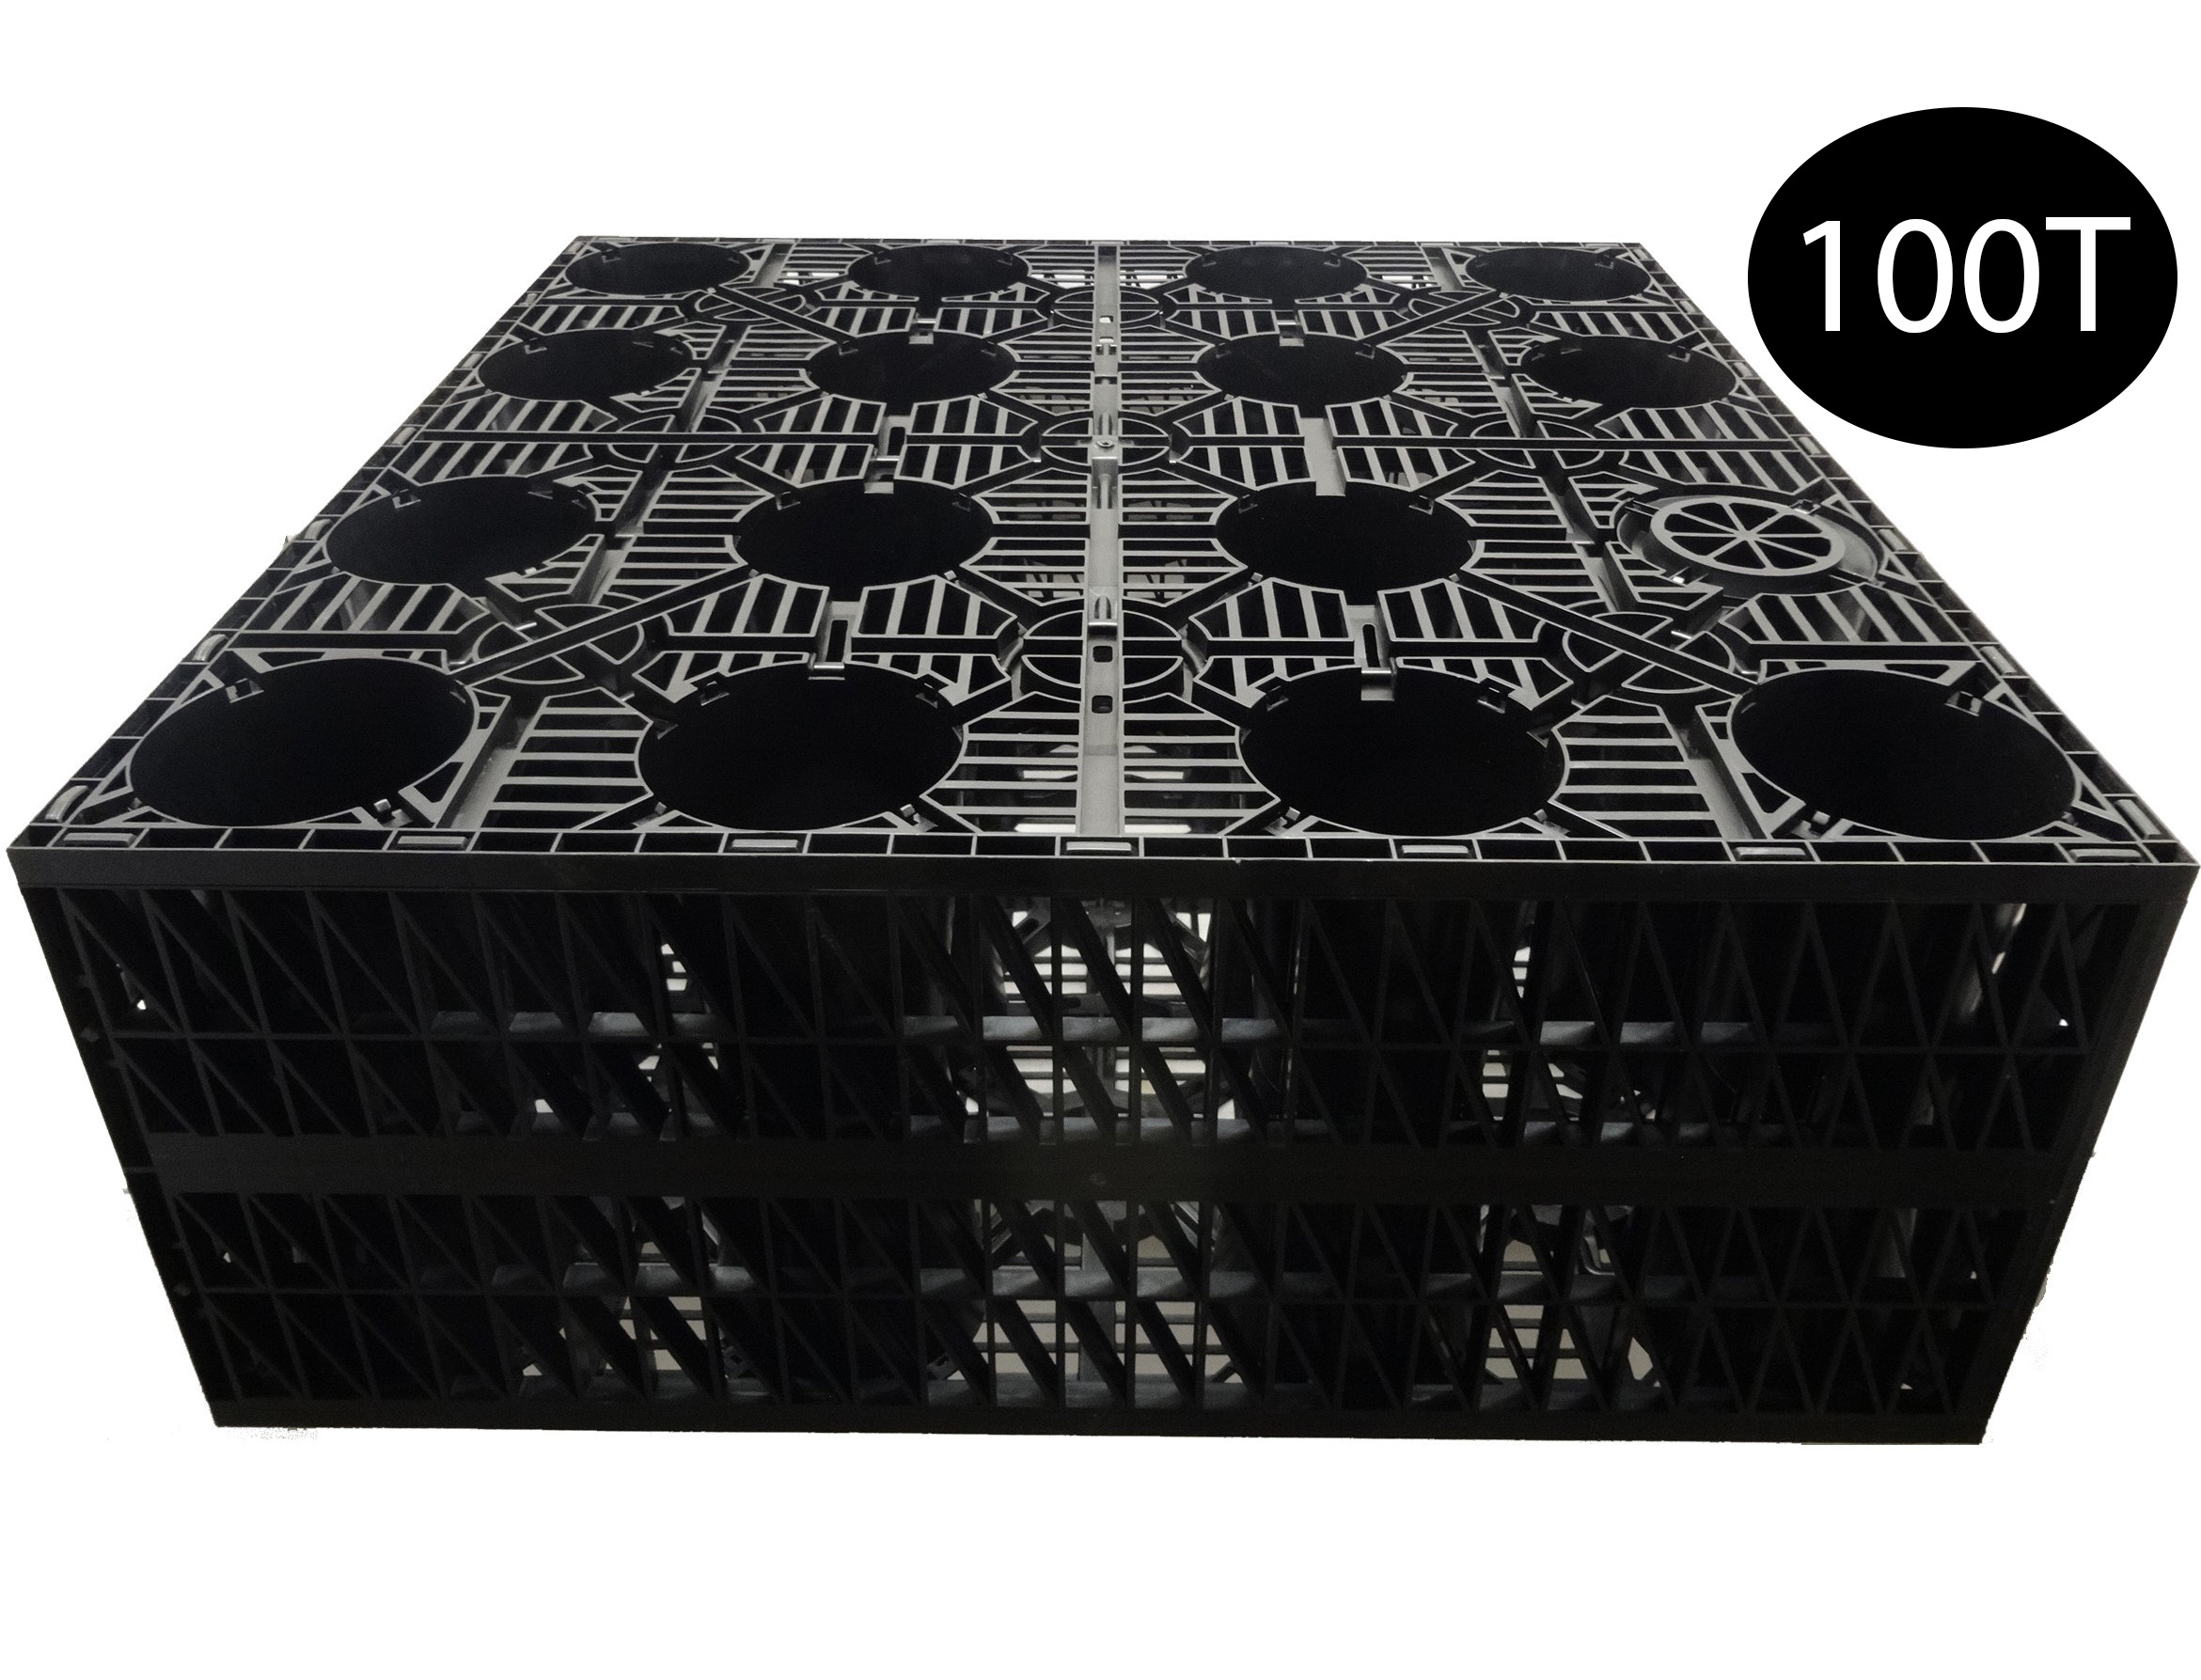 Pennine AquaCrate 490 (Deks Century100) Storm Attenuation Soakaway Crate (100T) - 1000x1000x400mm (0.4m3)